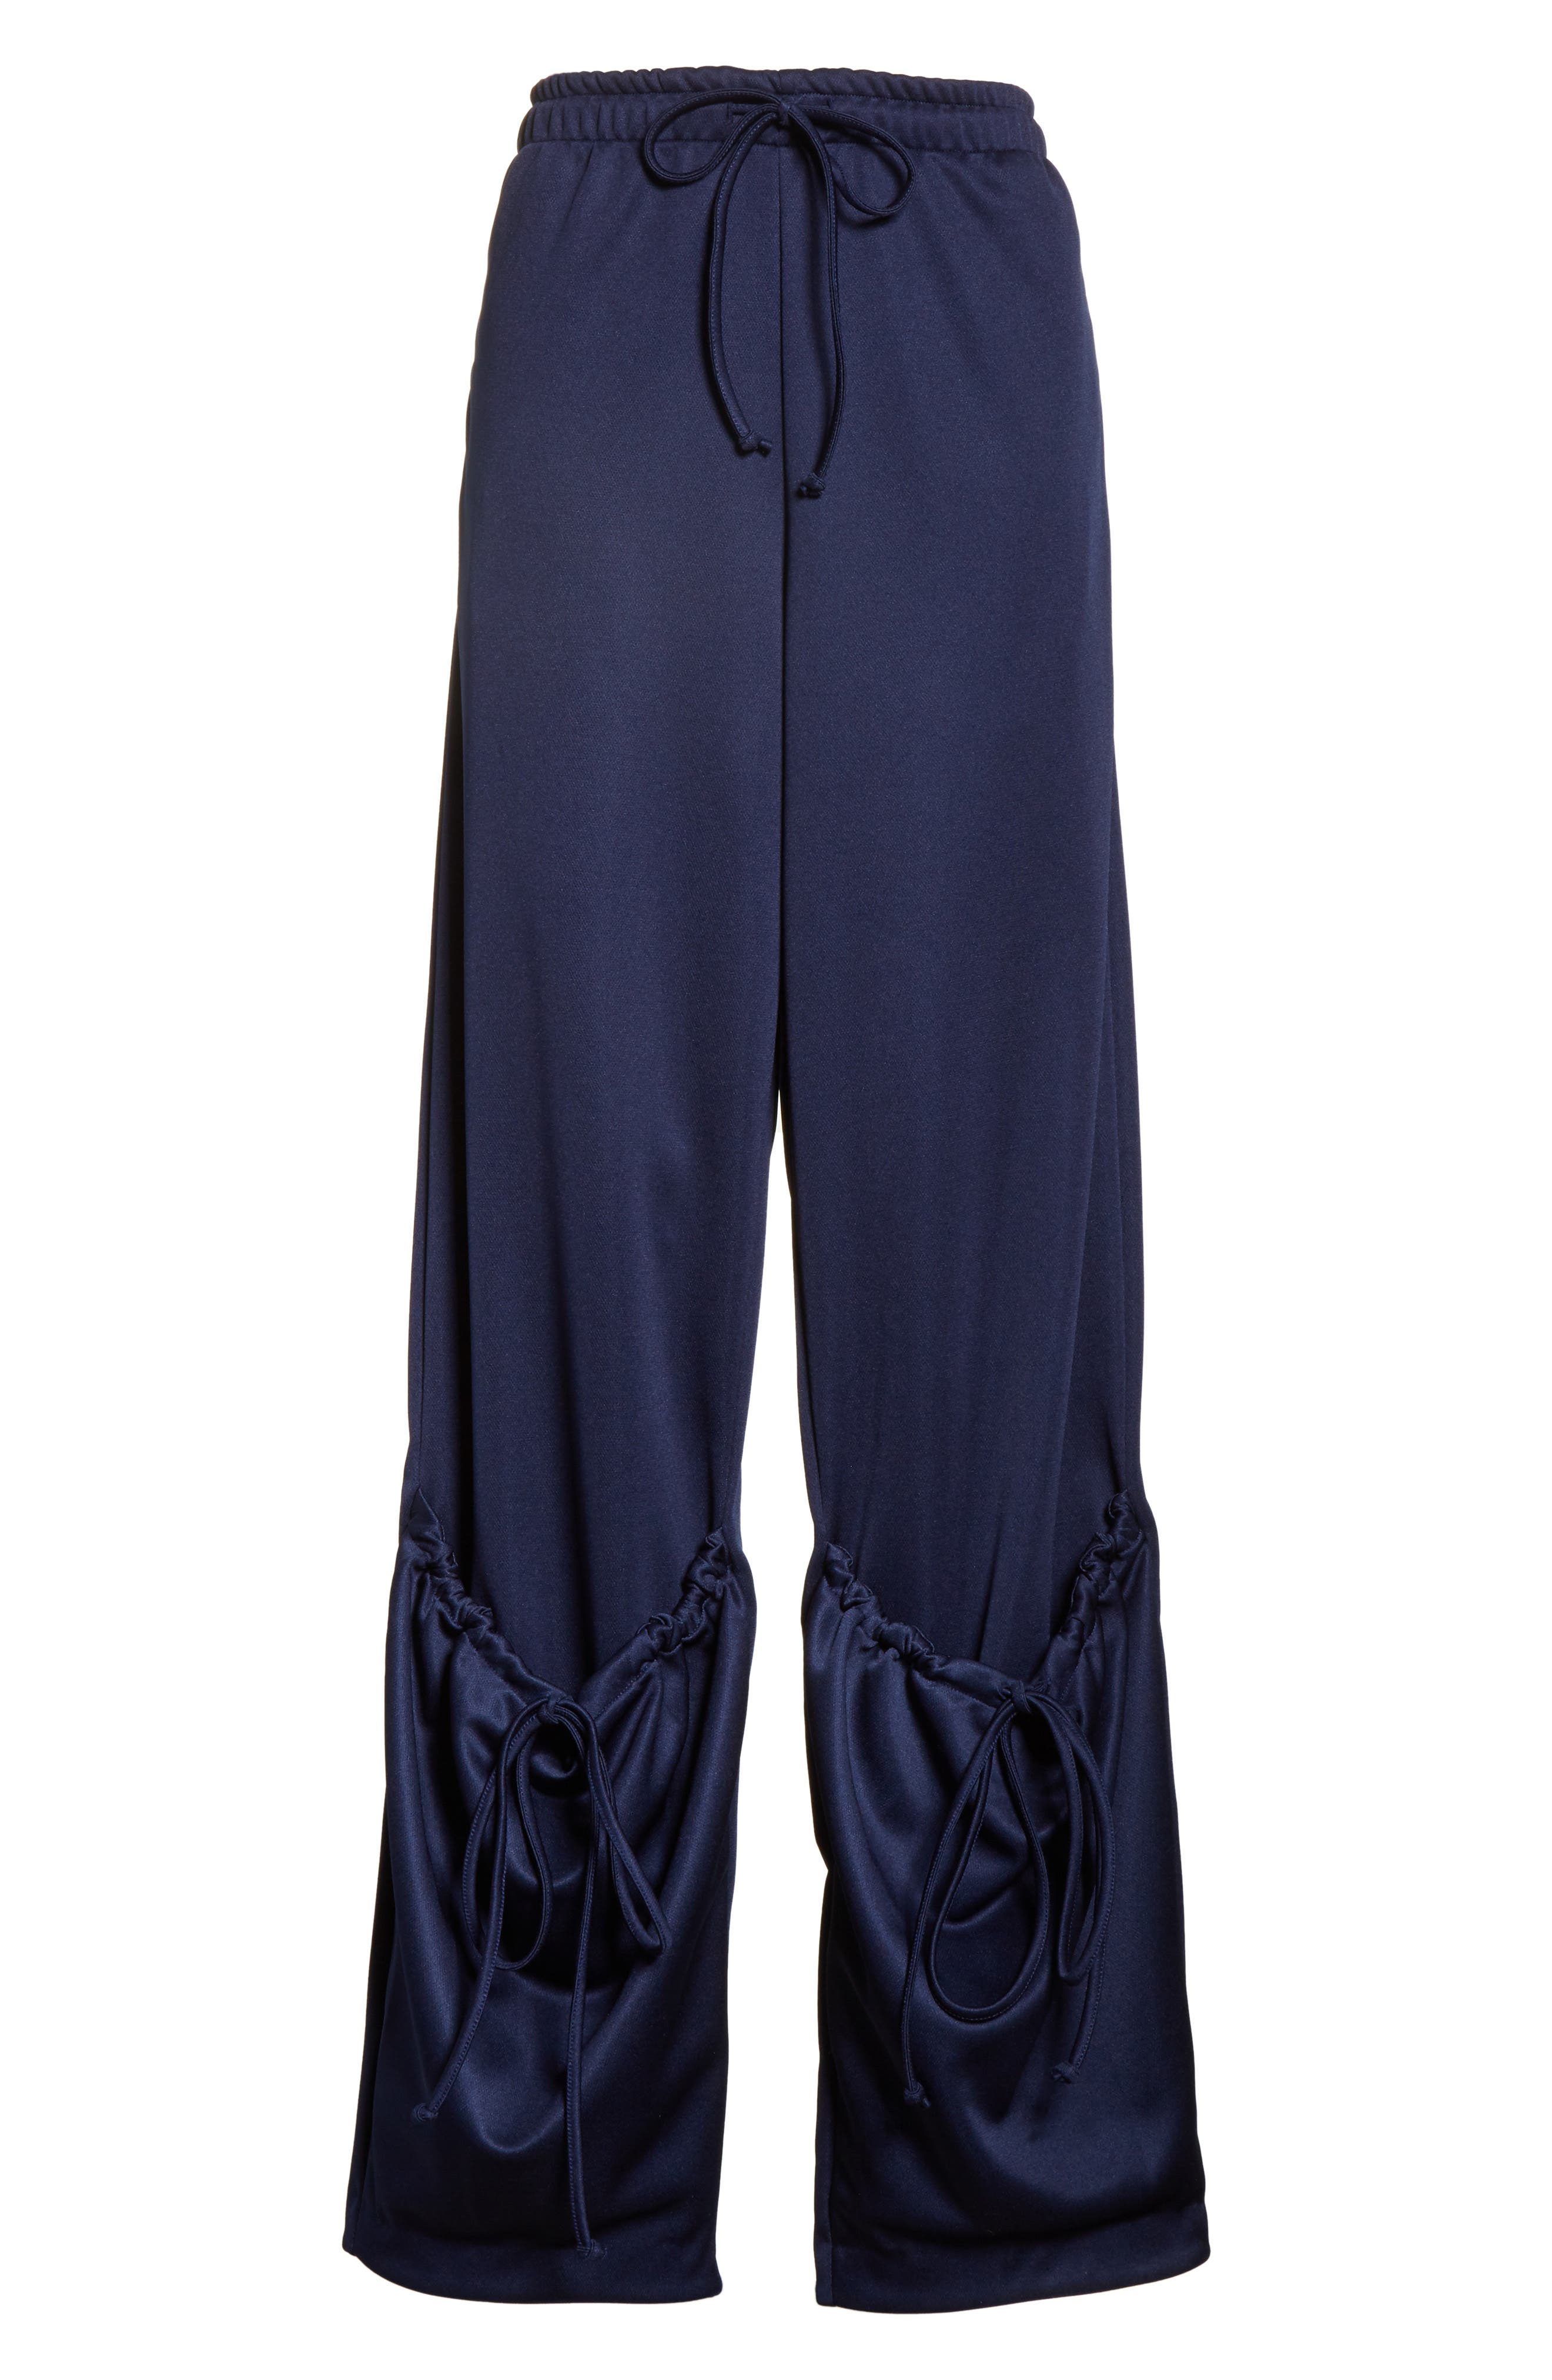 J.W.ANDERSON Jersey Pocket Hem Trousers,                             Alternate thumbnail 7, color,                             Midnight Blue